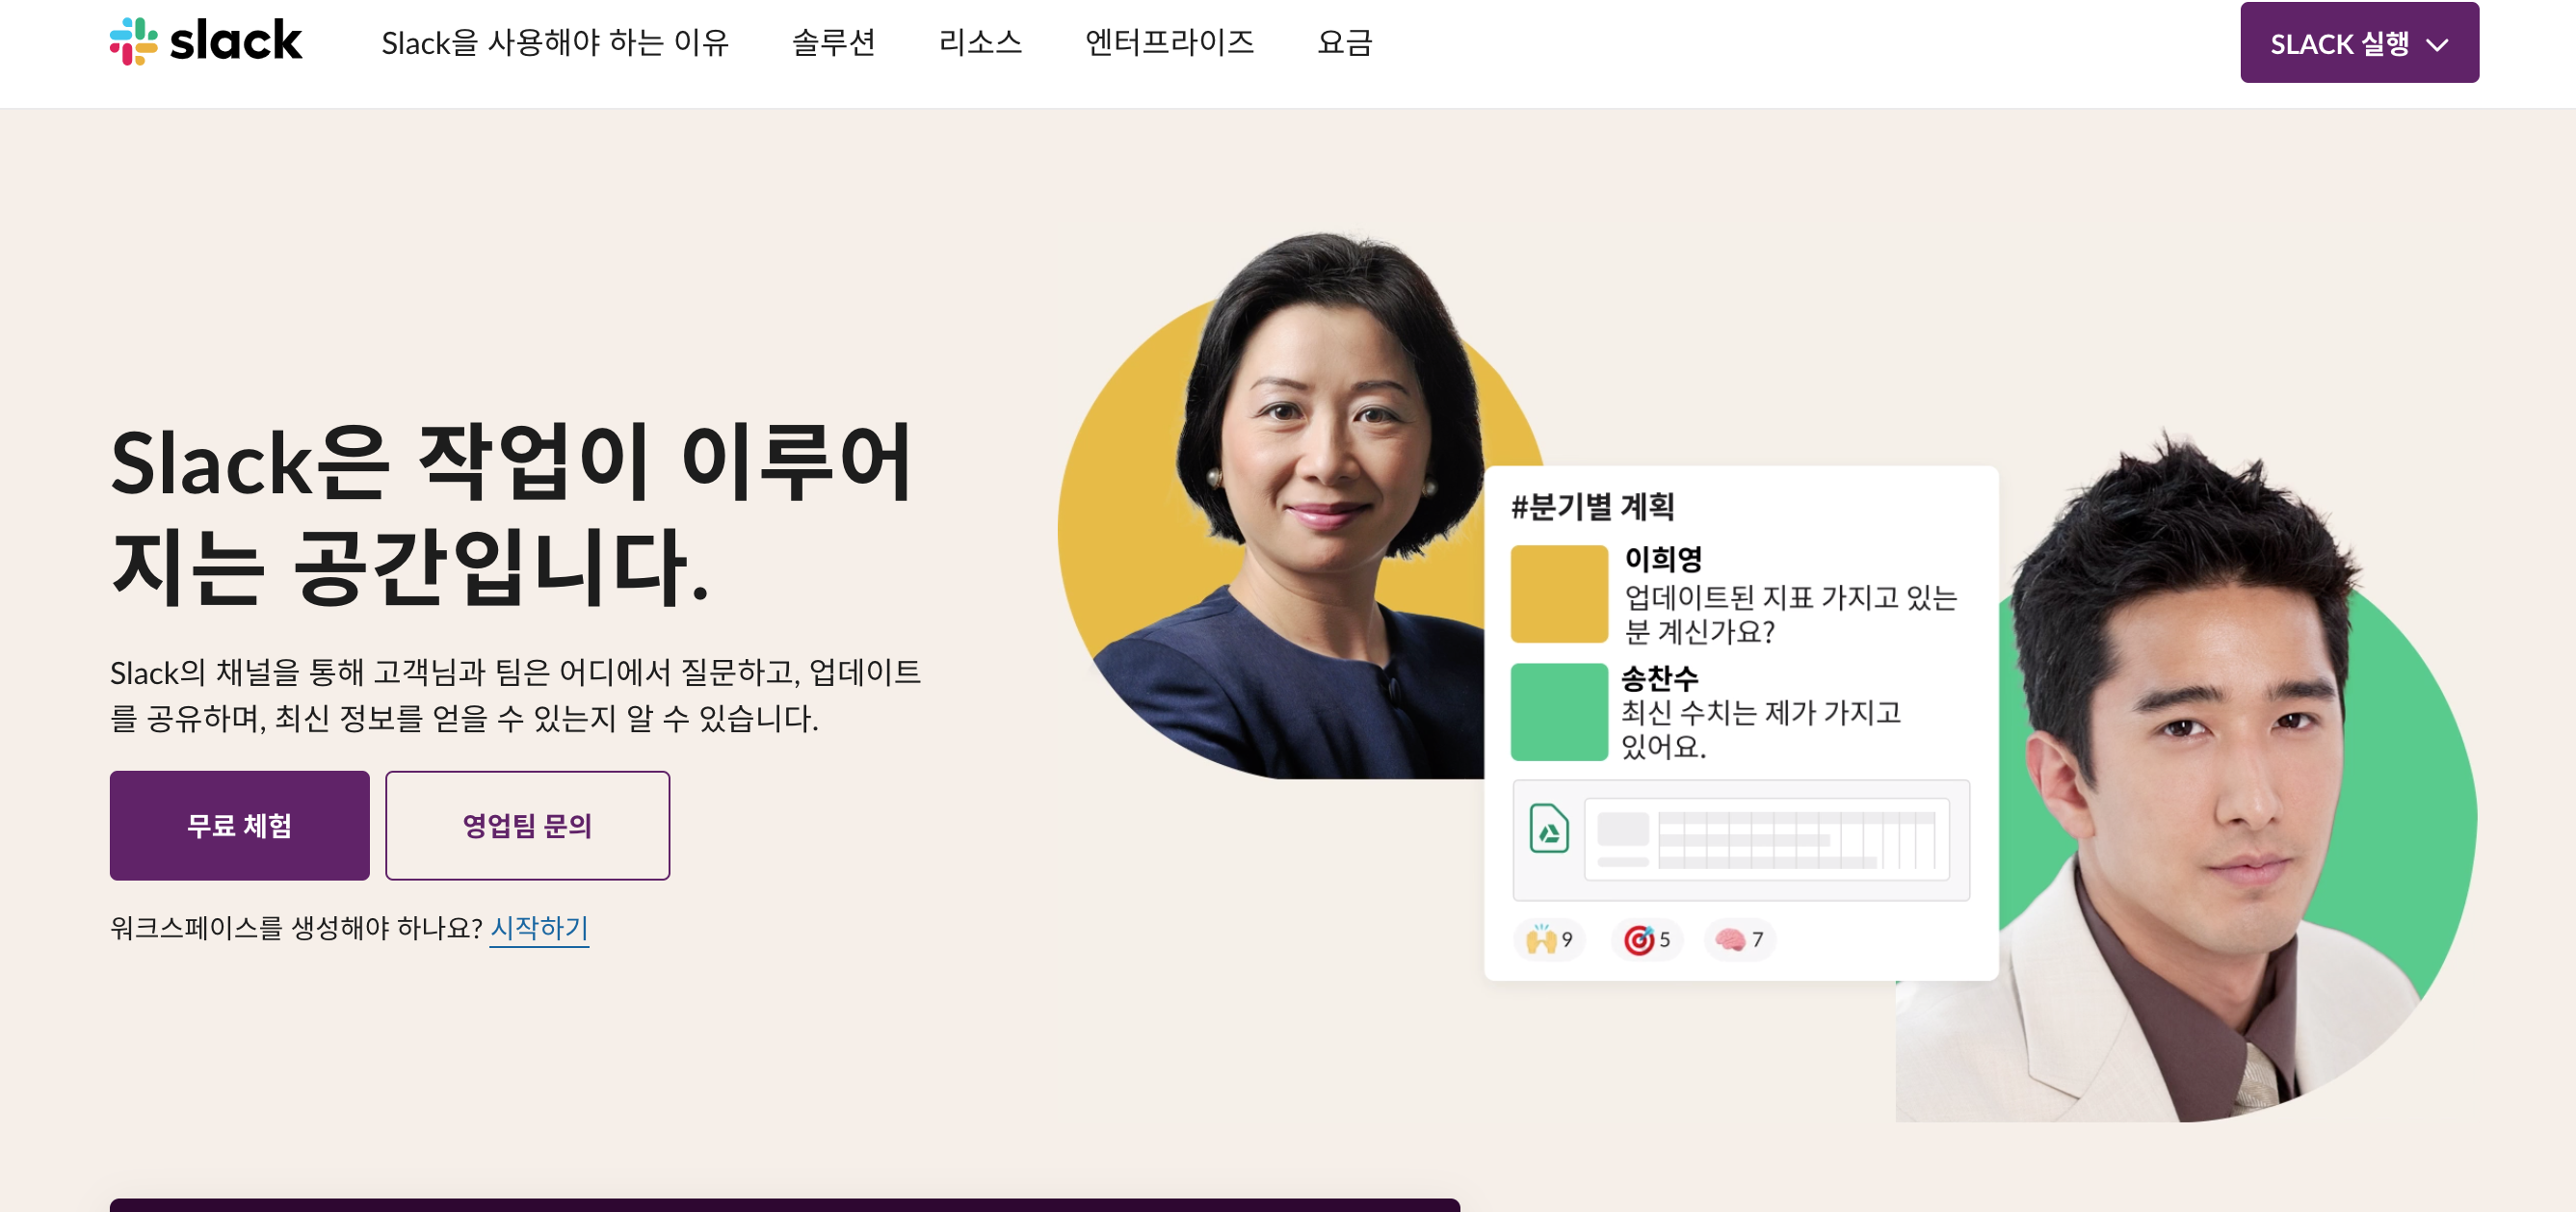 slack korean website